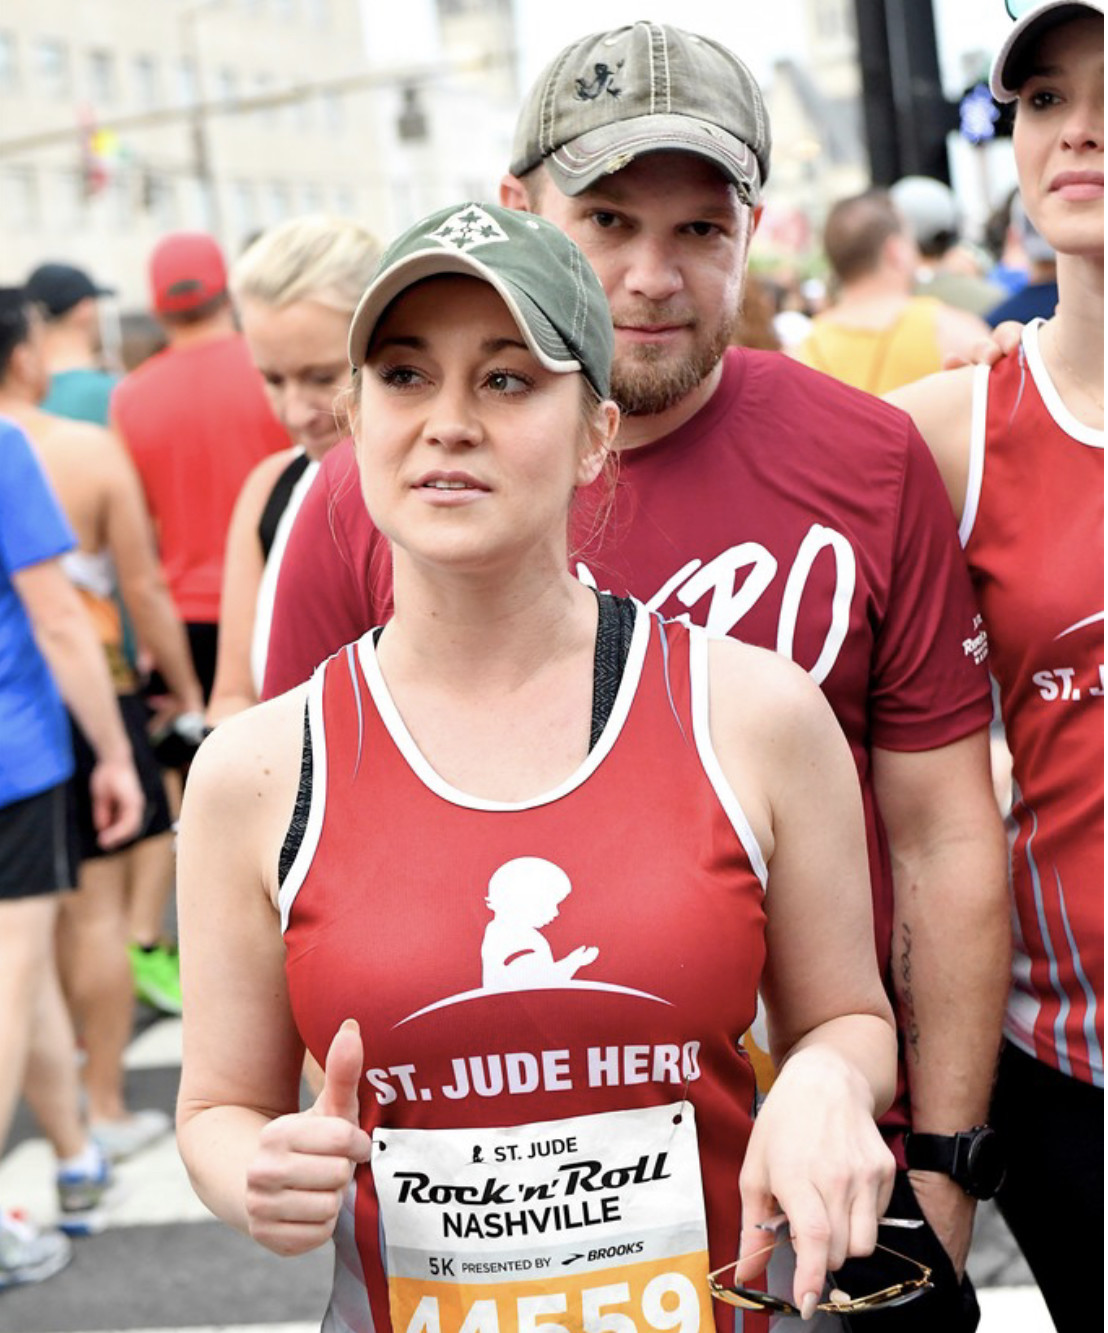 The Rock 'n' Roll Nashville Marathon and Half Marathon scheduled for Saturday has been canceled due to the rising number of COVID-19 cases in the area.